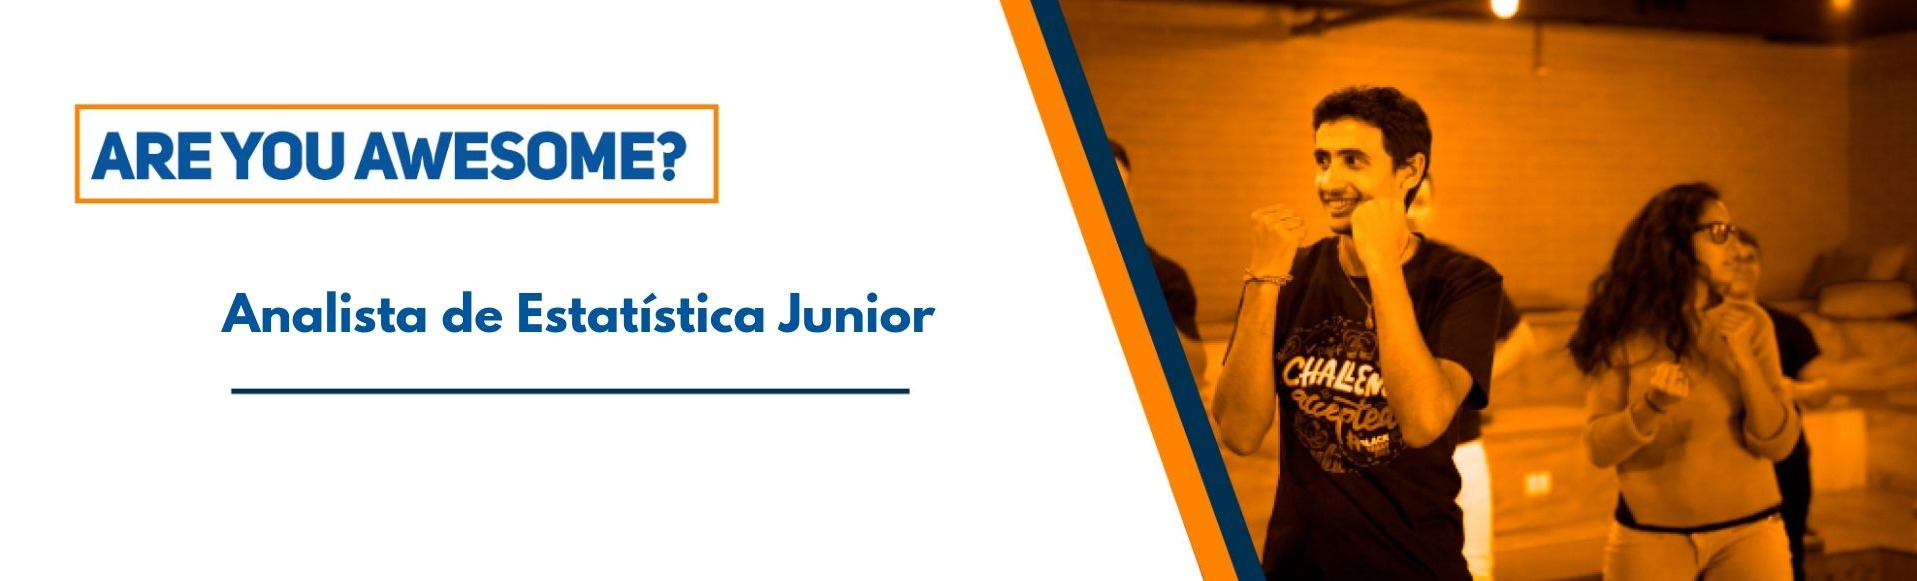 Analista de Estatística Junior